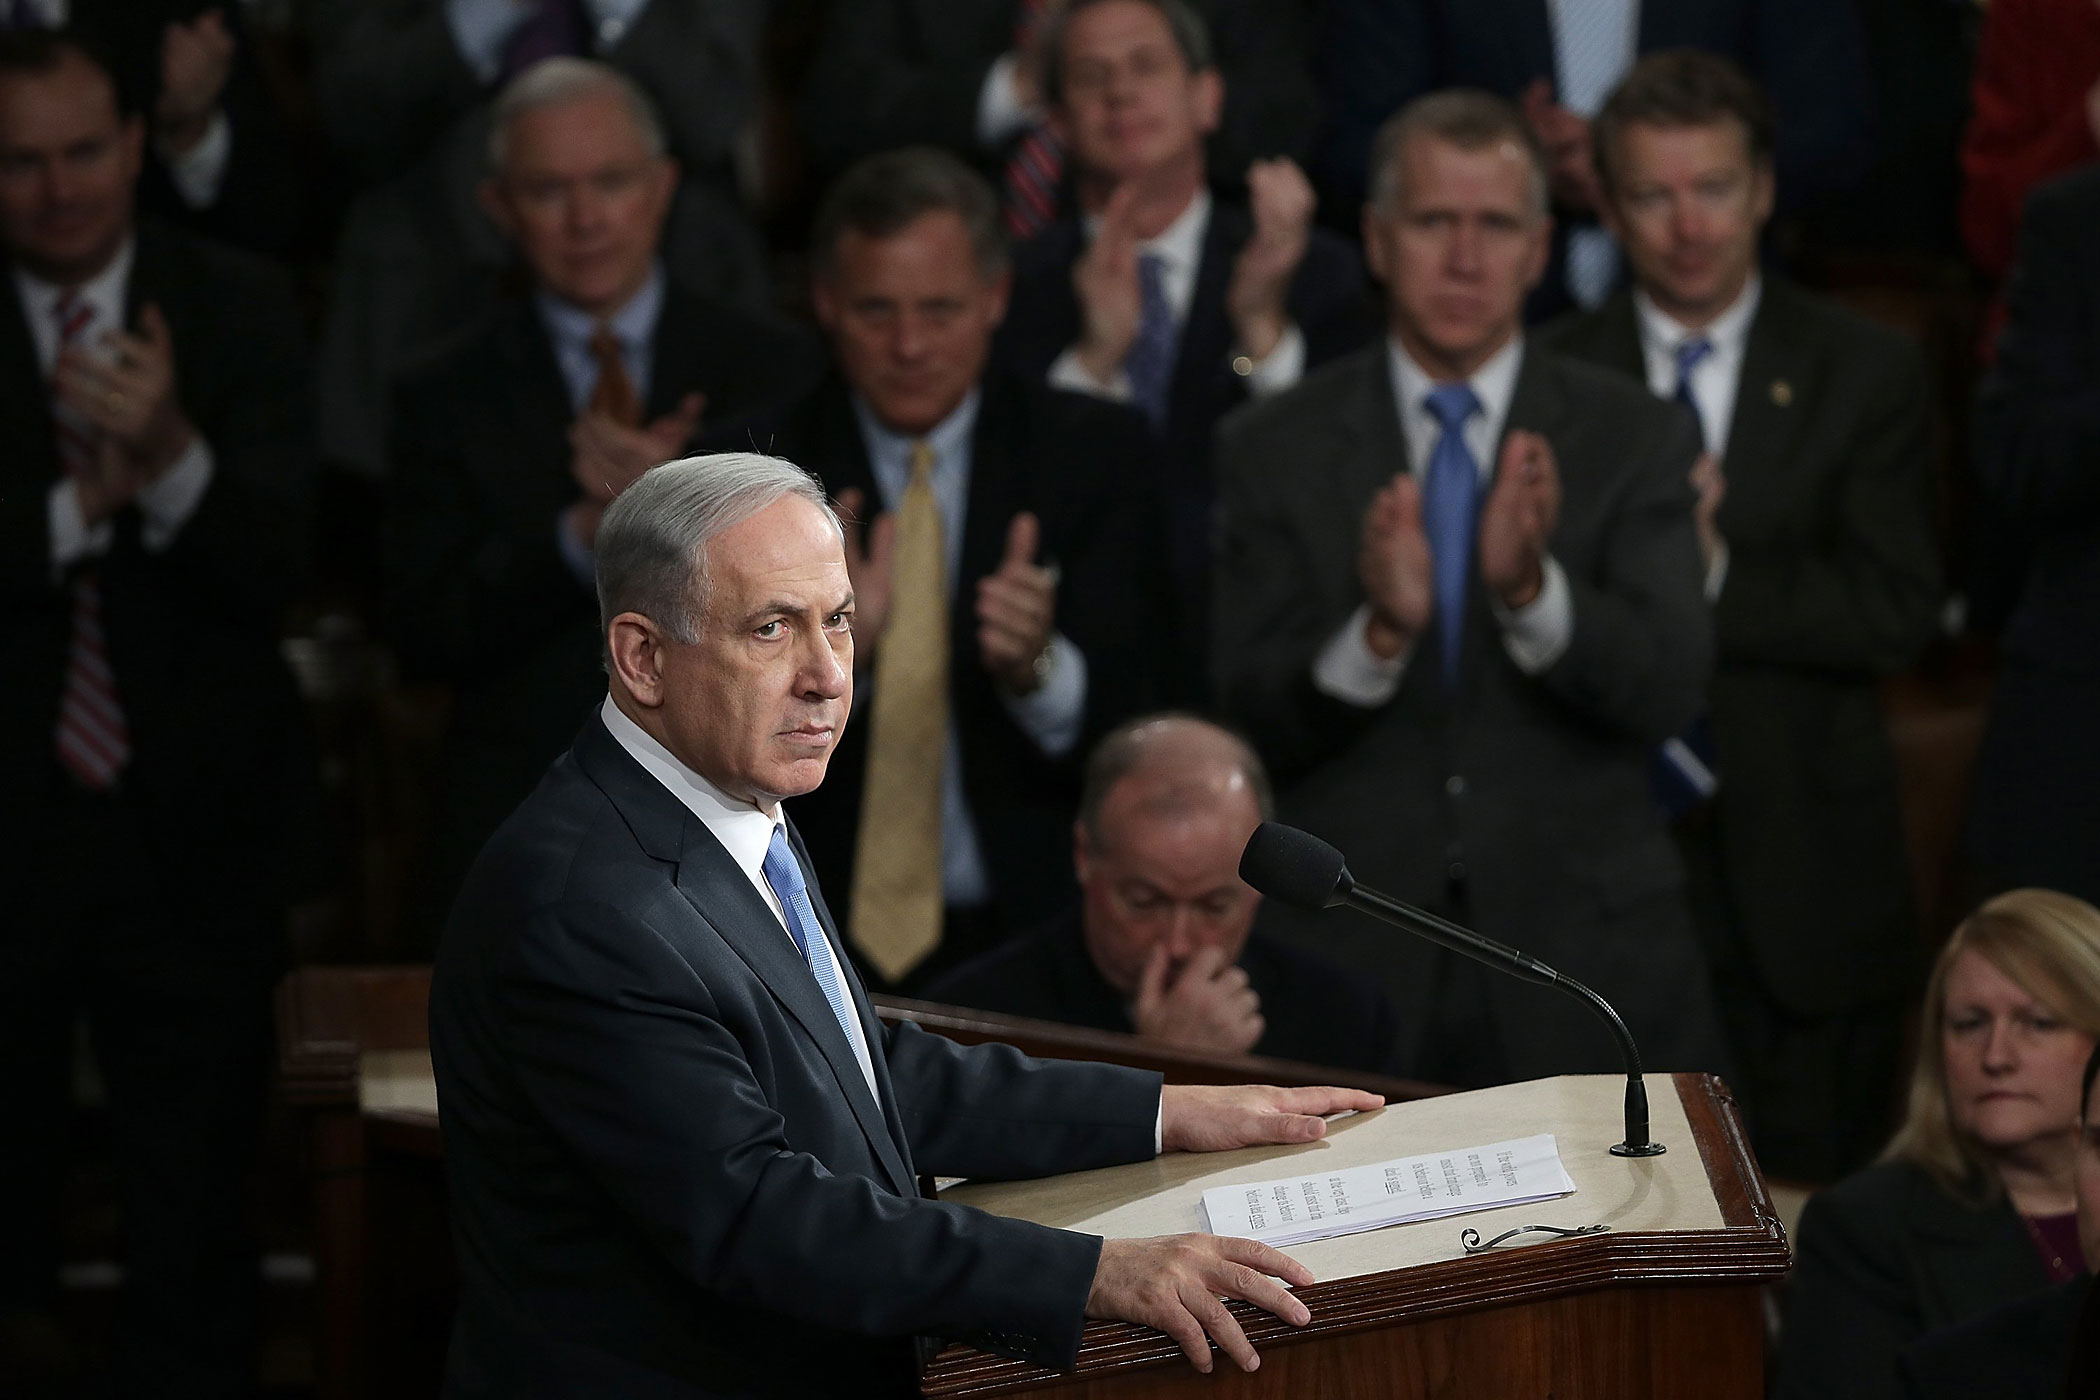 Israeli Prime Minister Benjamin Netanyahu addresses a joint meeting of the United States Congress in the House chamber at the U.S. Capitol on March 3, 2015 in Washington, DC.